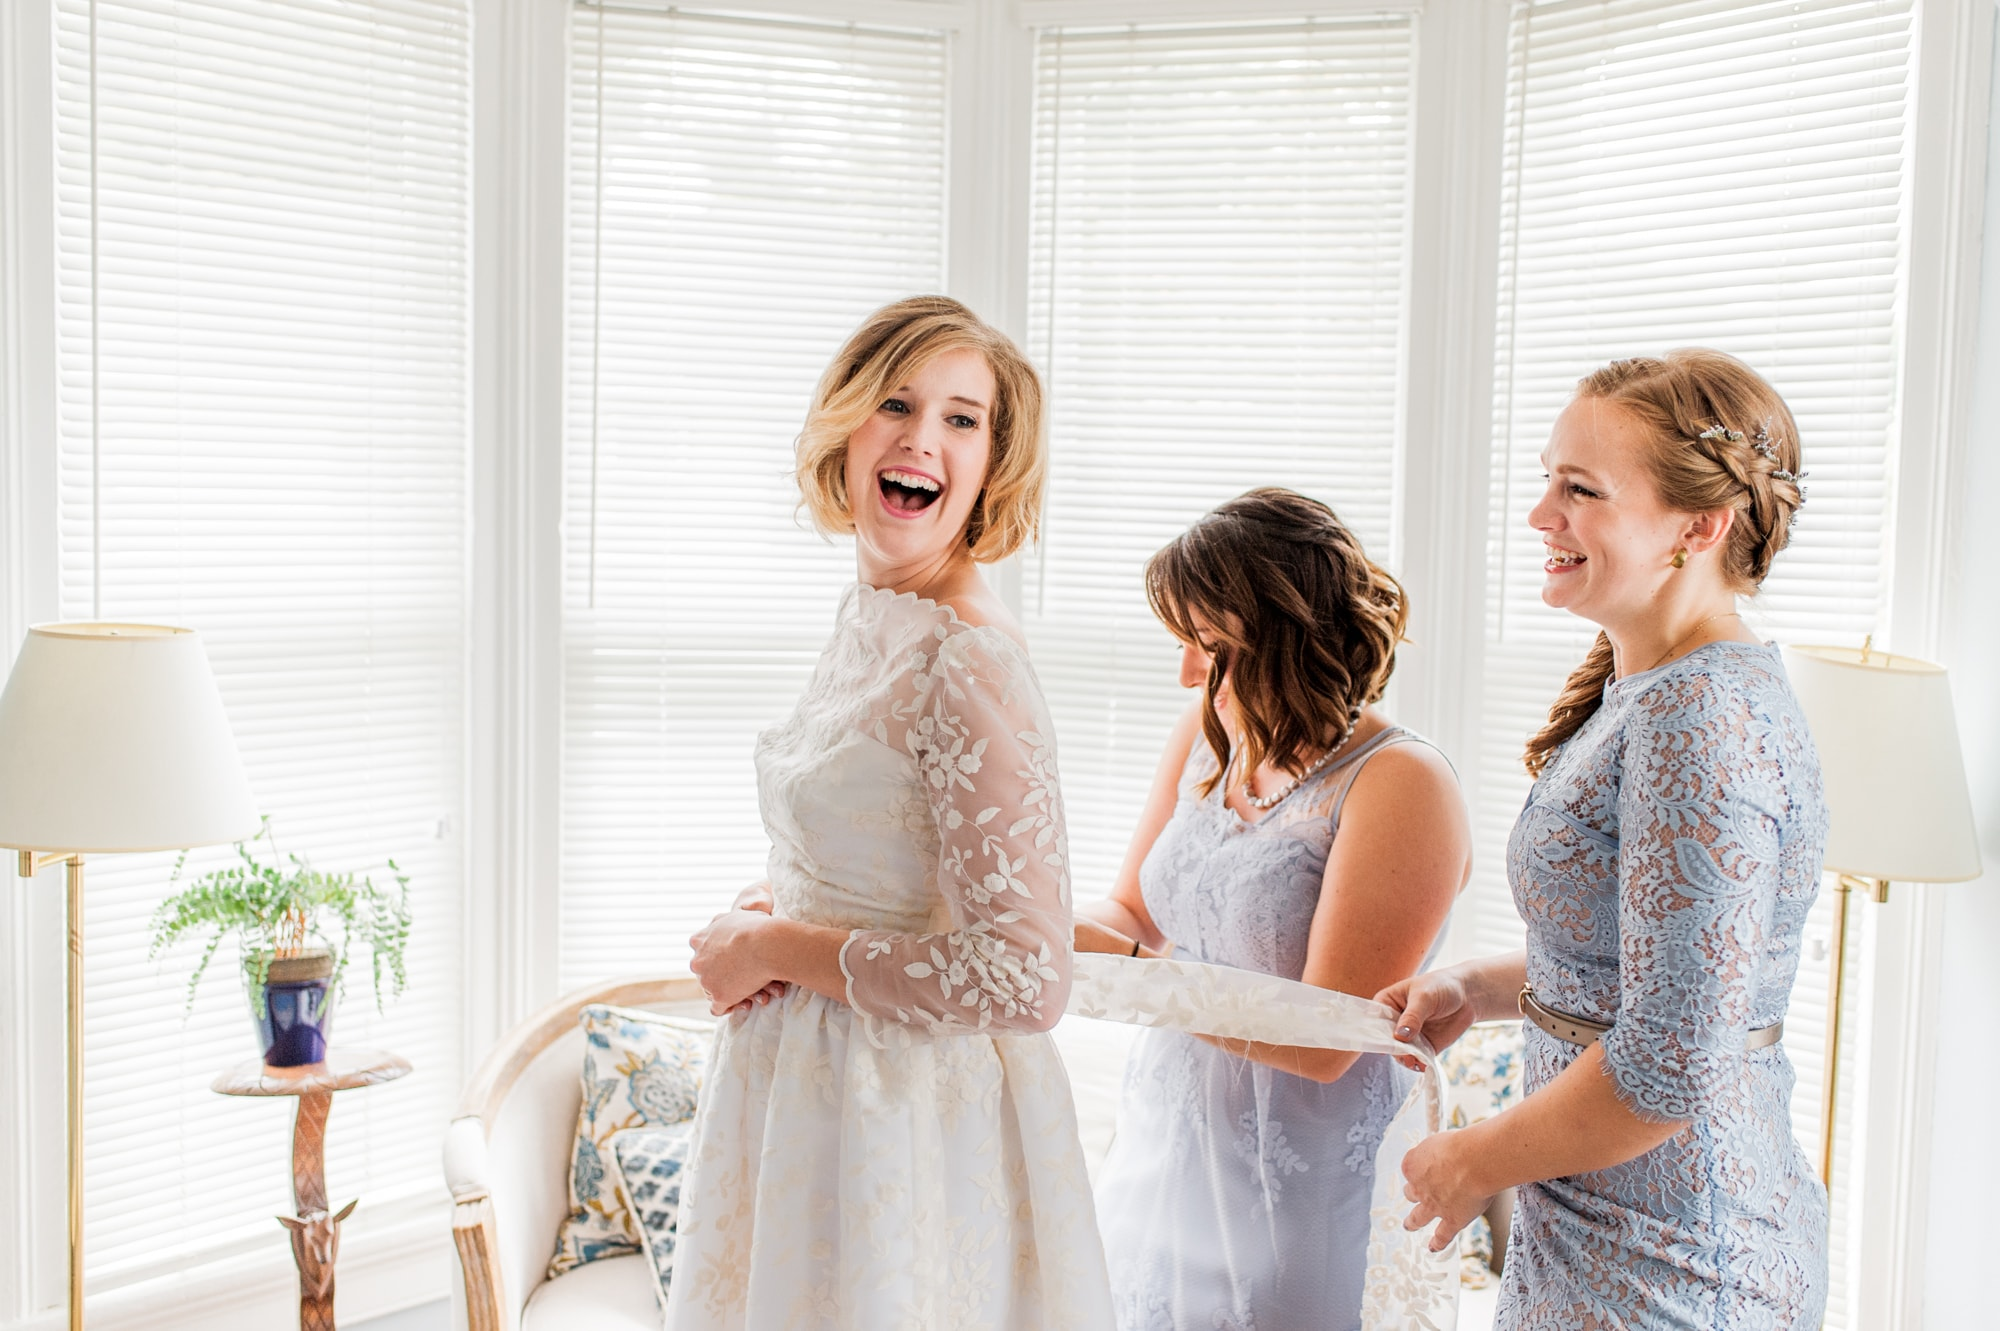 Falls Village Inn Wedding, CT Wedding, Eileen Meny Photography